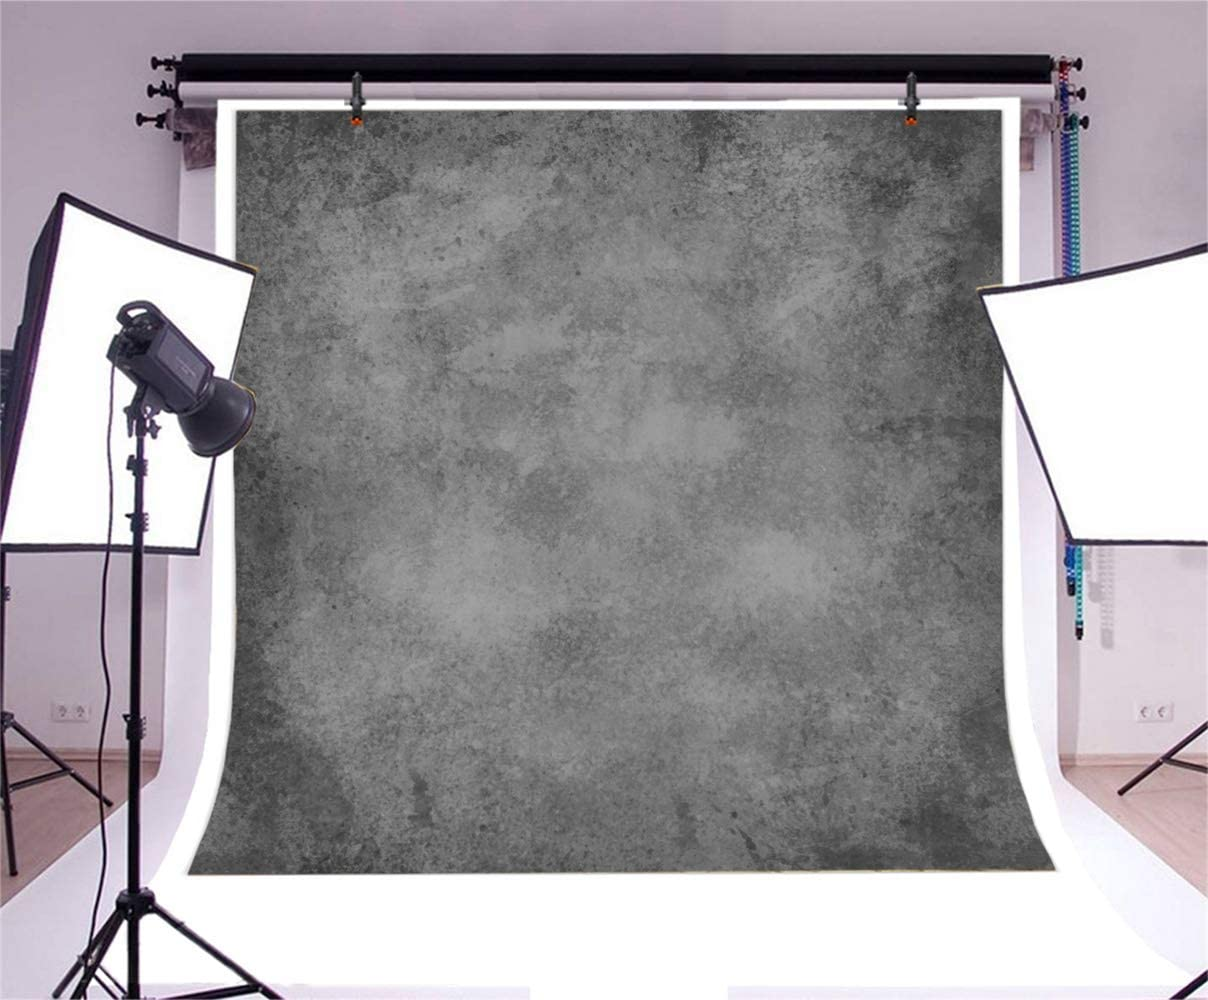 Nostalgia Style Wallpaper Clothes Product Shoot Studio Props H Laeacco 3x5ft Grunge Abstract Grey Vinyl Photography Background Child Adult Pets Personal Artistic Portrait Shoot Backdrop 1m x1.5m W